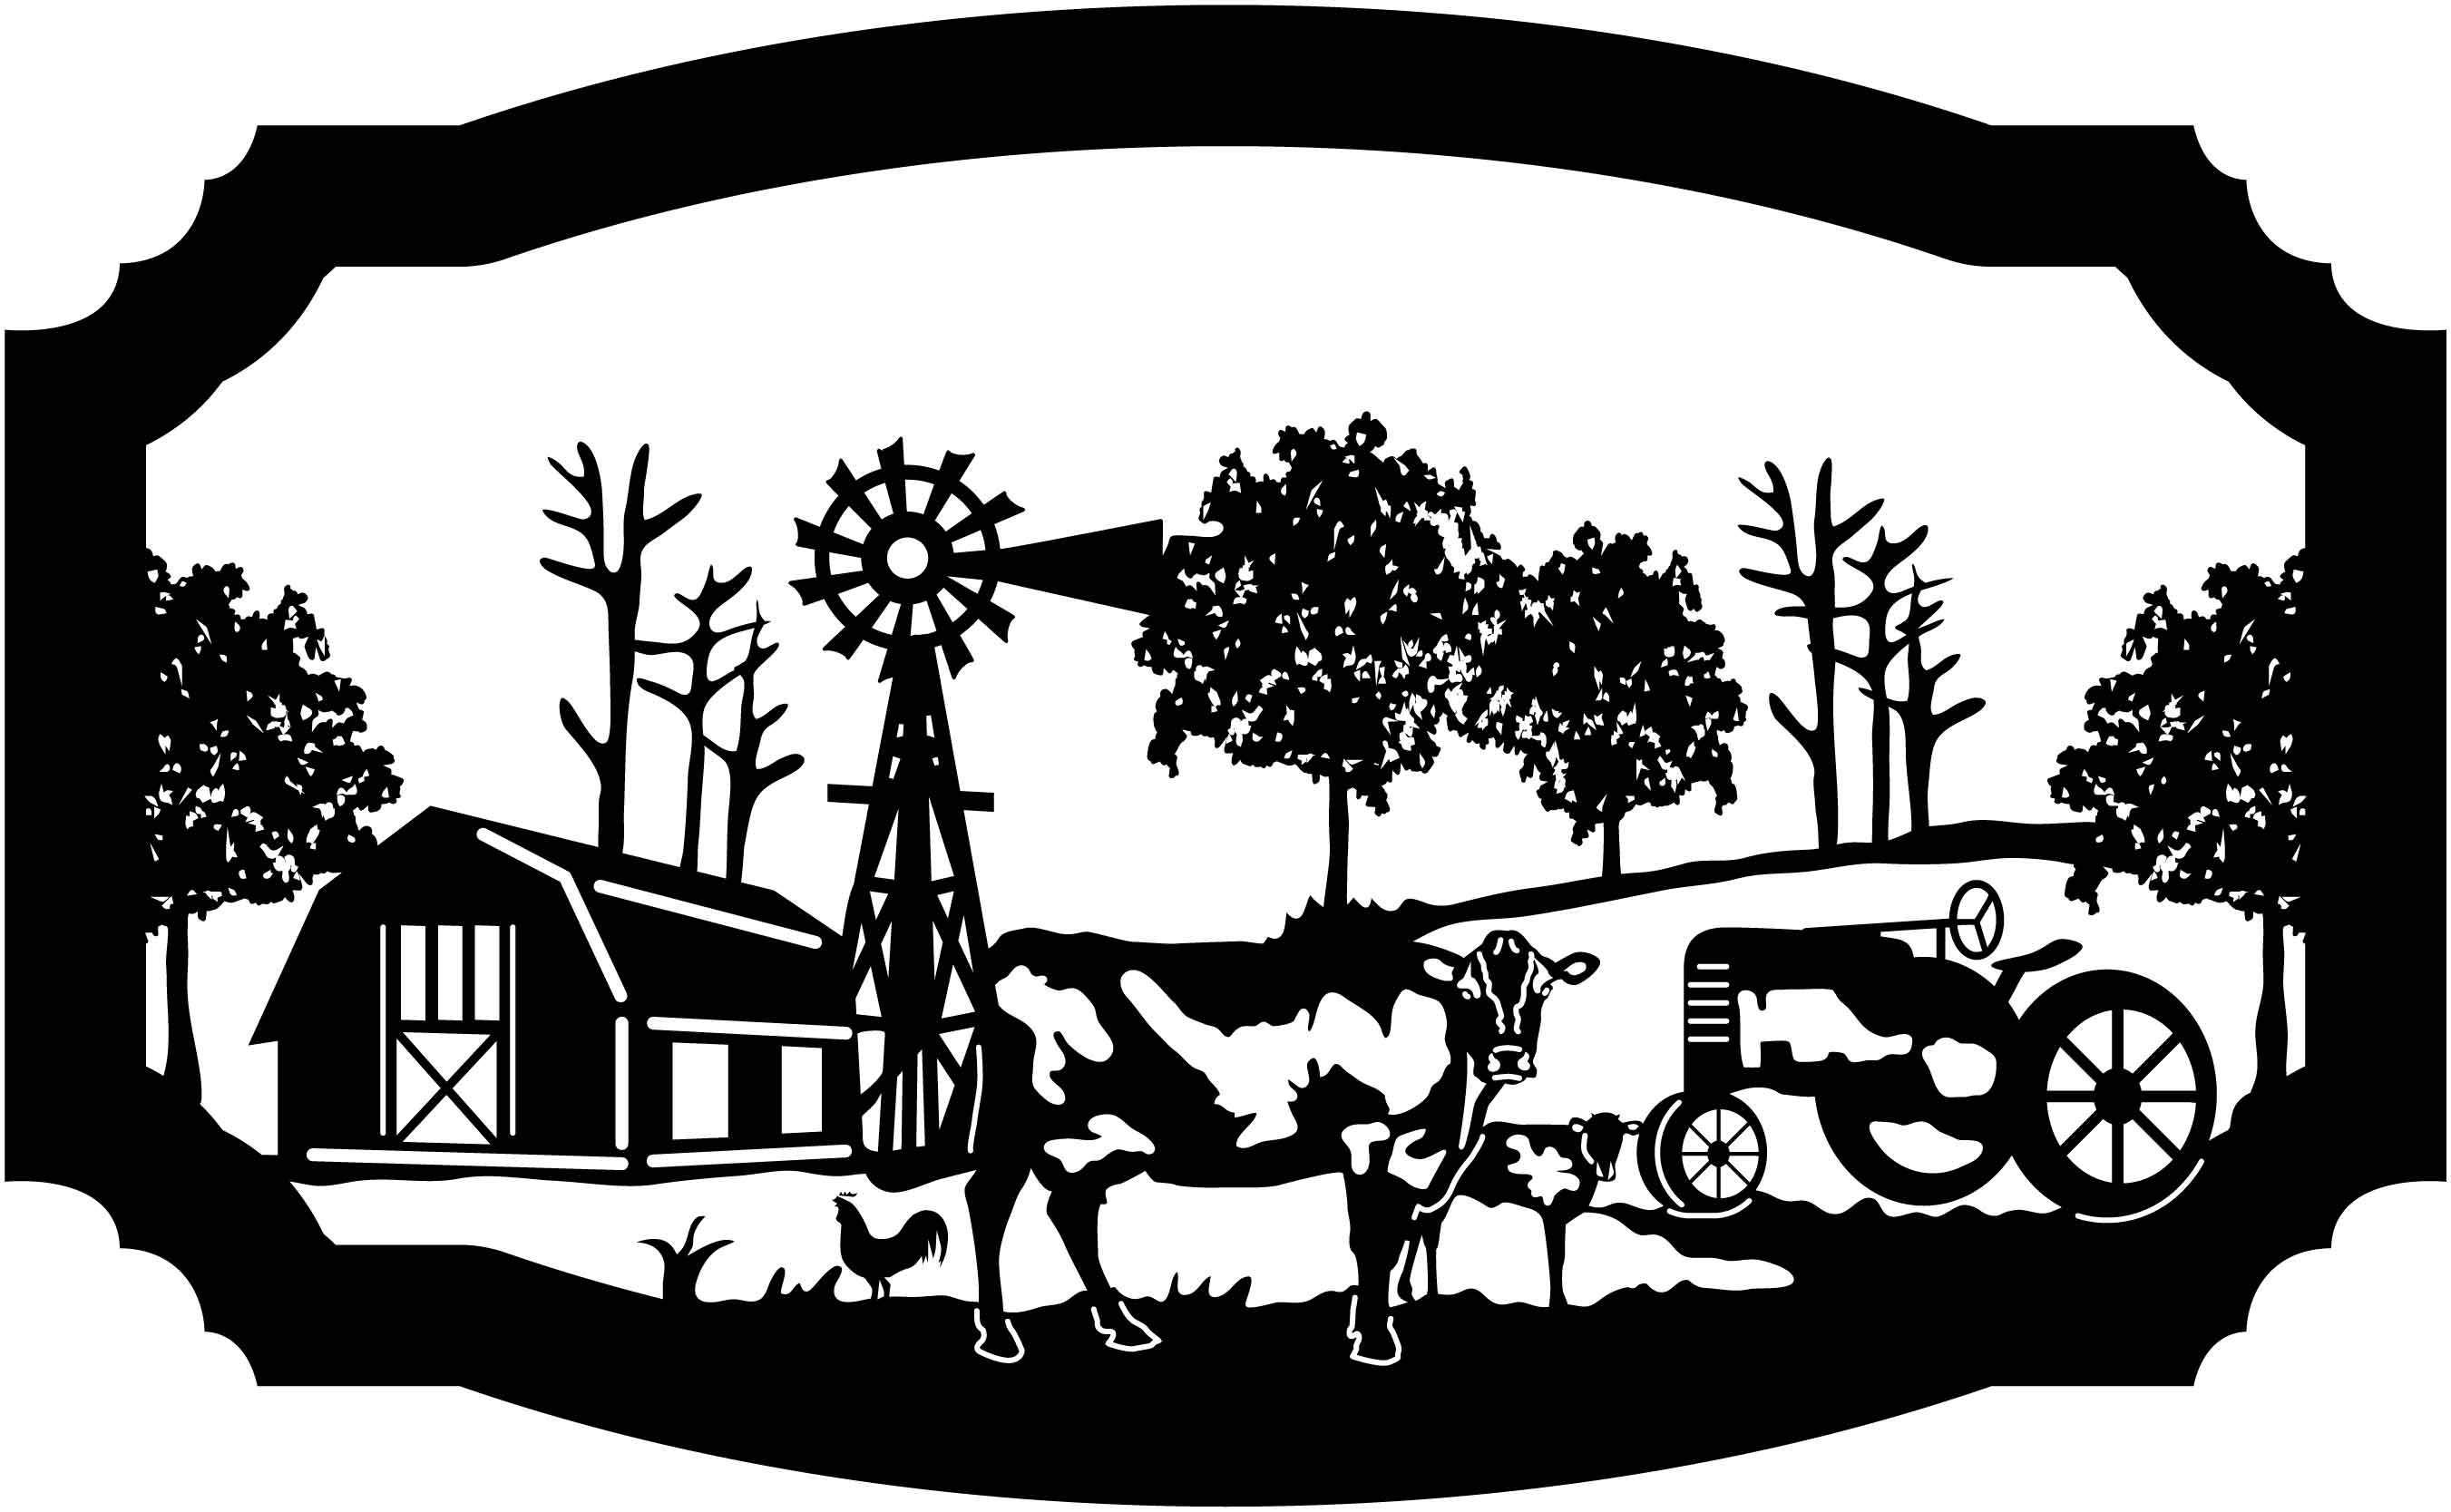 Horse cow tractor sheep clipart black and white picture royalty free library Sign Farm scene of Barn, cow, calf, rooster, windmill and ... picture royalty free library